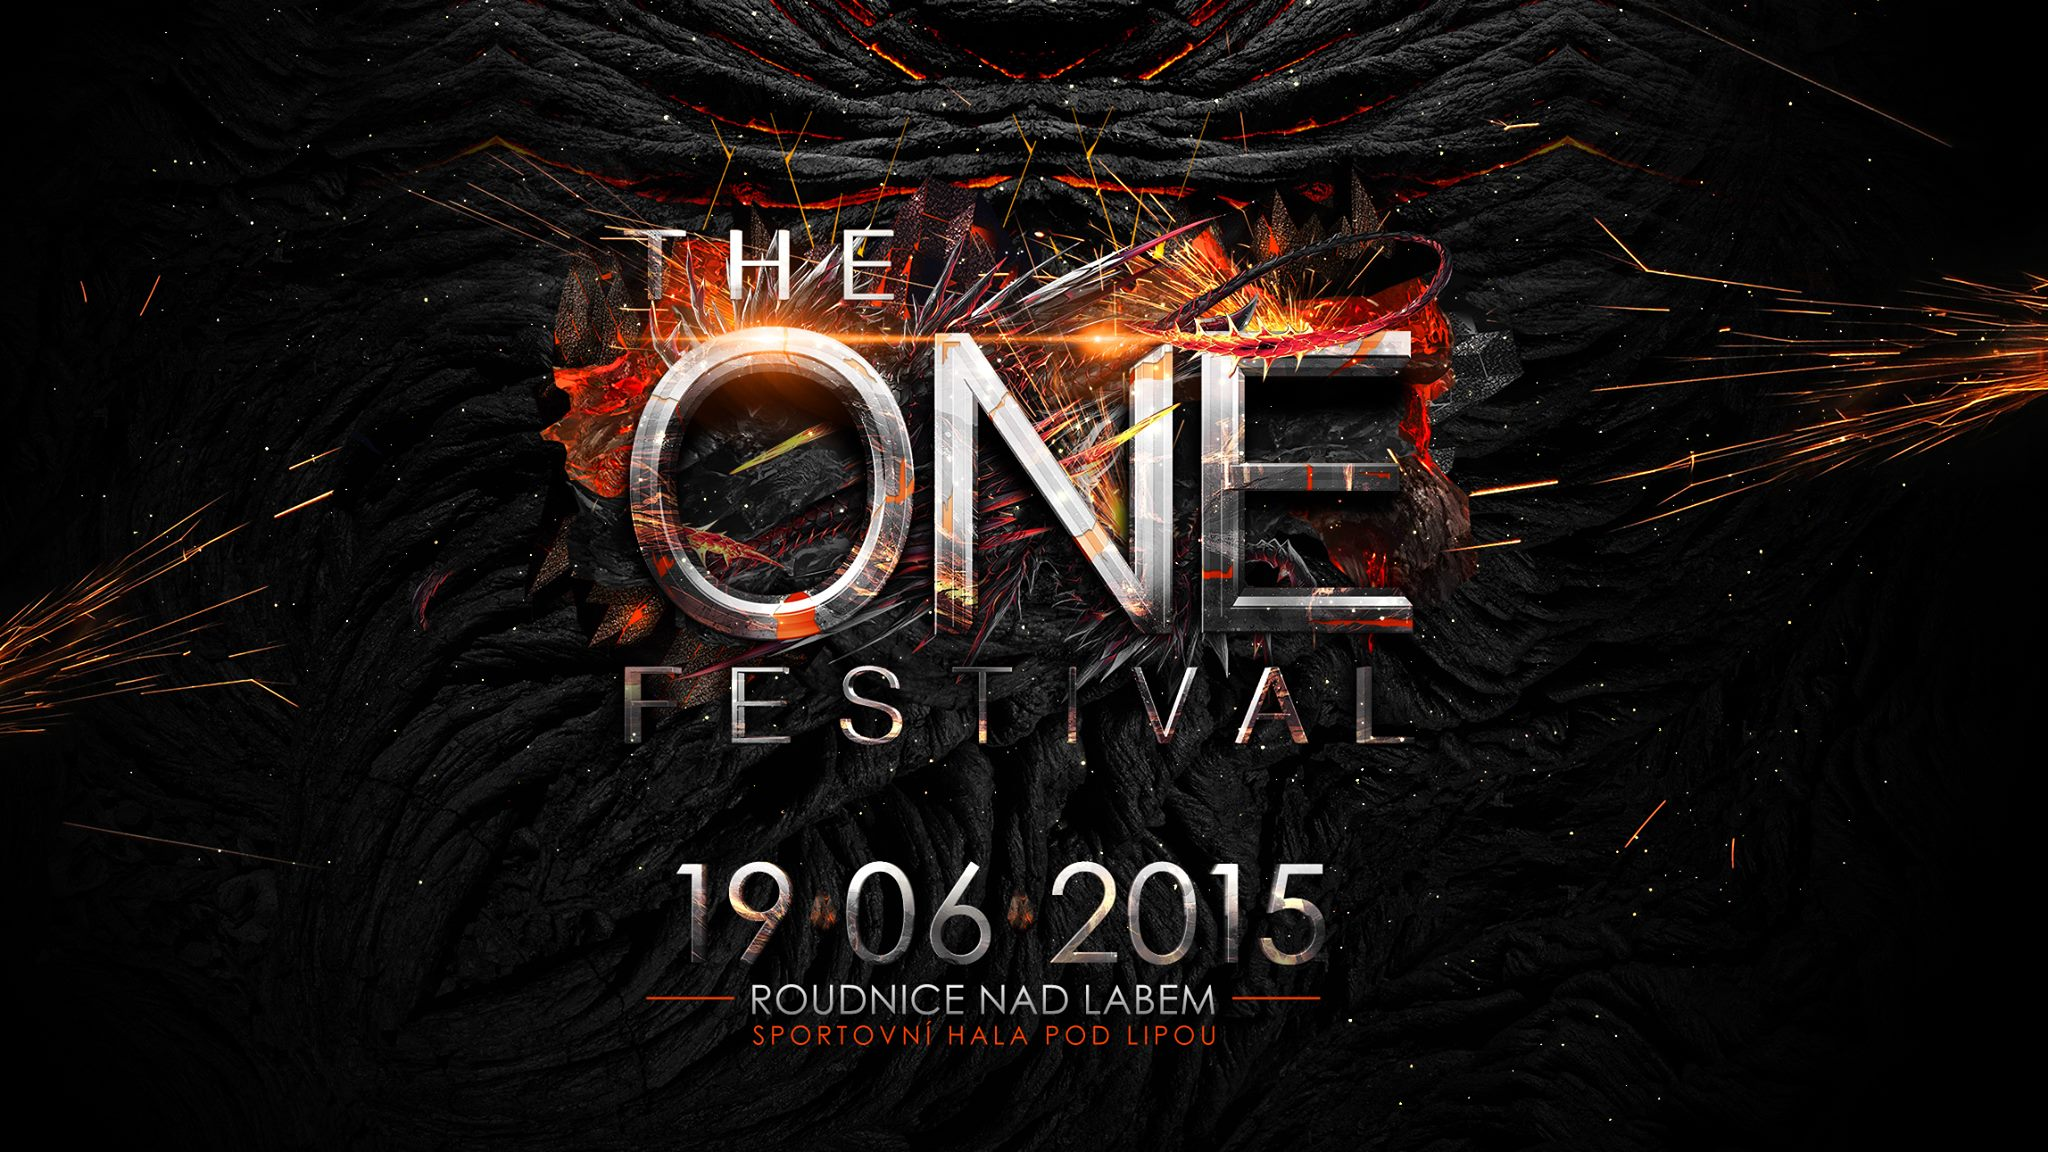 housemagazine.cz podcast: The One Festival special.